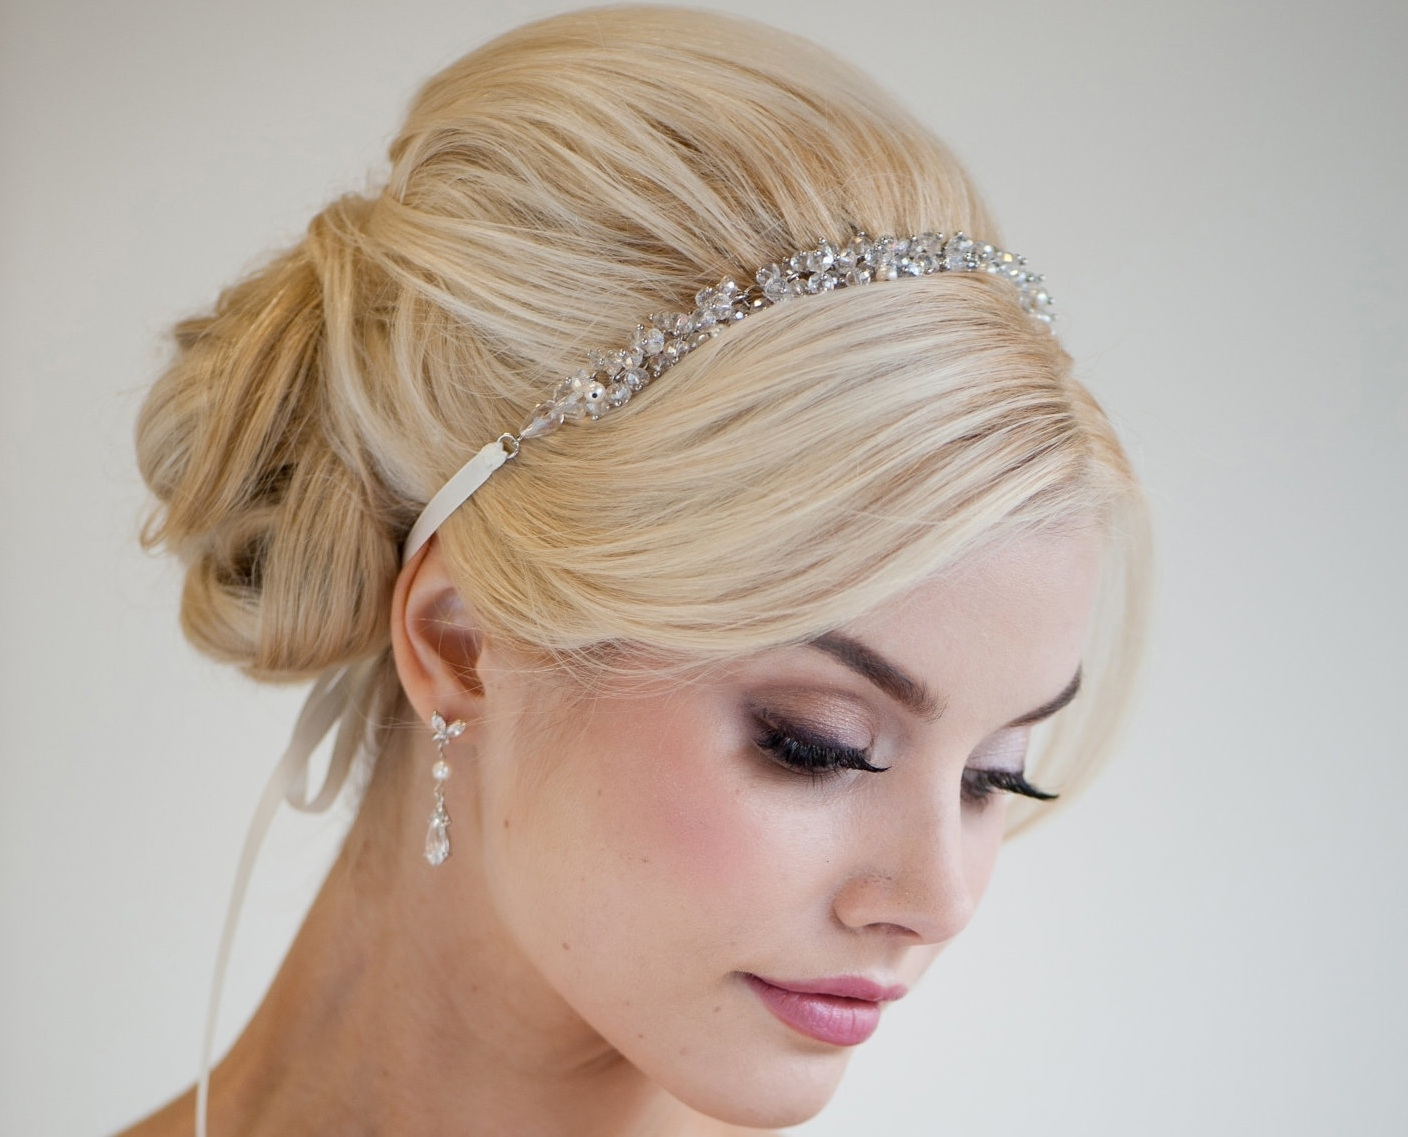 Hairstyles For Weddings Bridesmaid – Hairstyles Inspiration Pertaining To Most Recently Released Wedding Hairstyles For Bride And Bridesmaids (View 9 of 15)